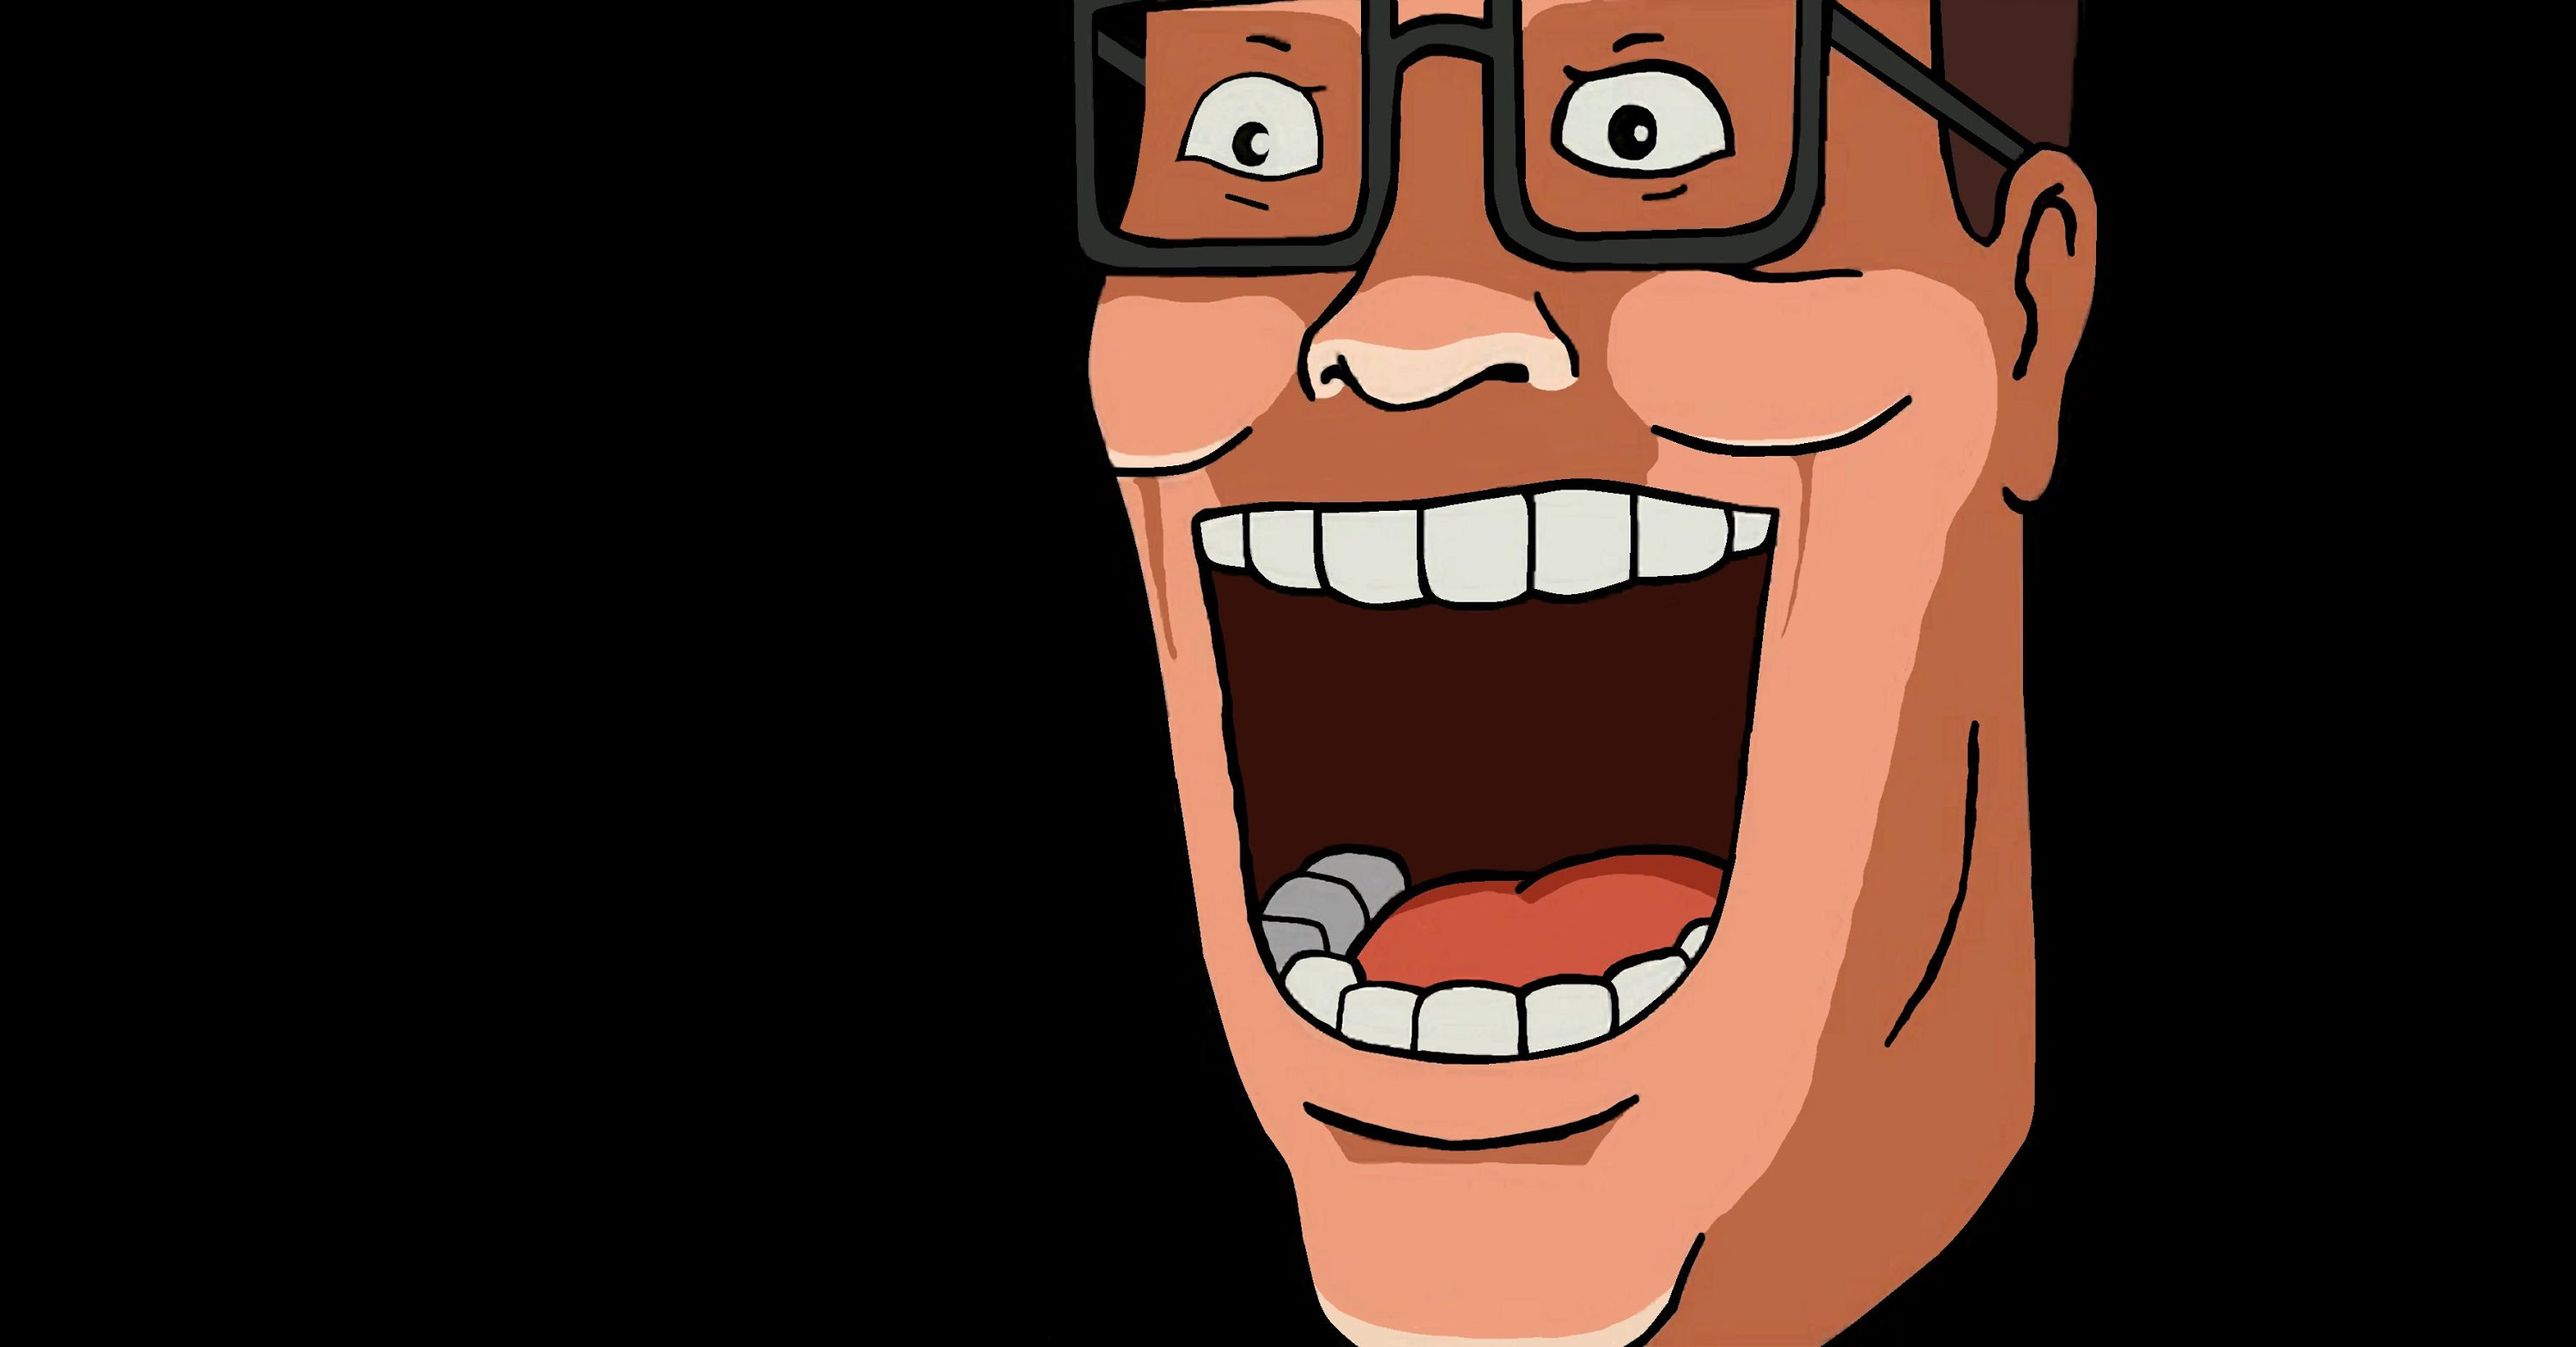 Download Hank Hill Wallpaper Gallery